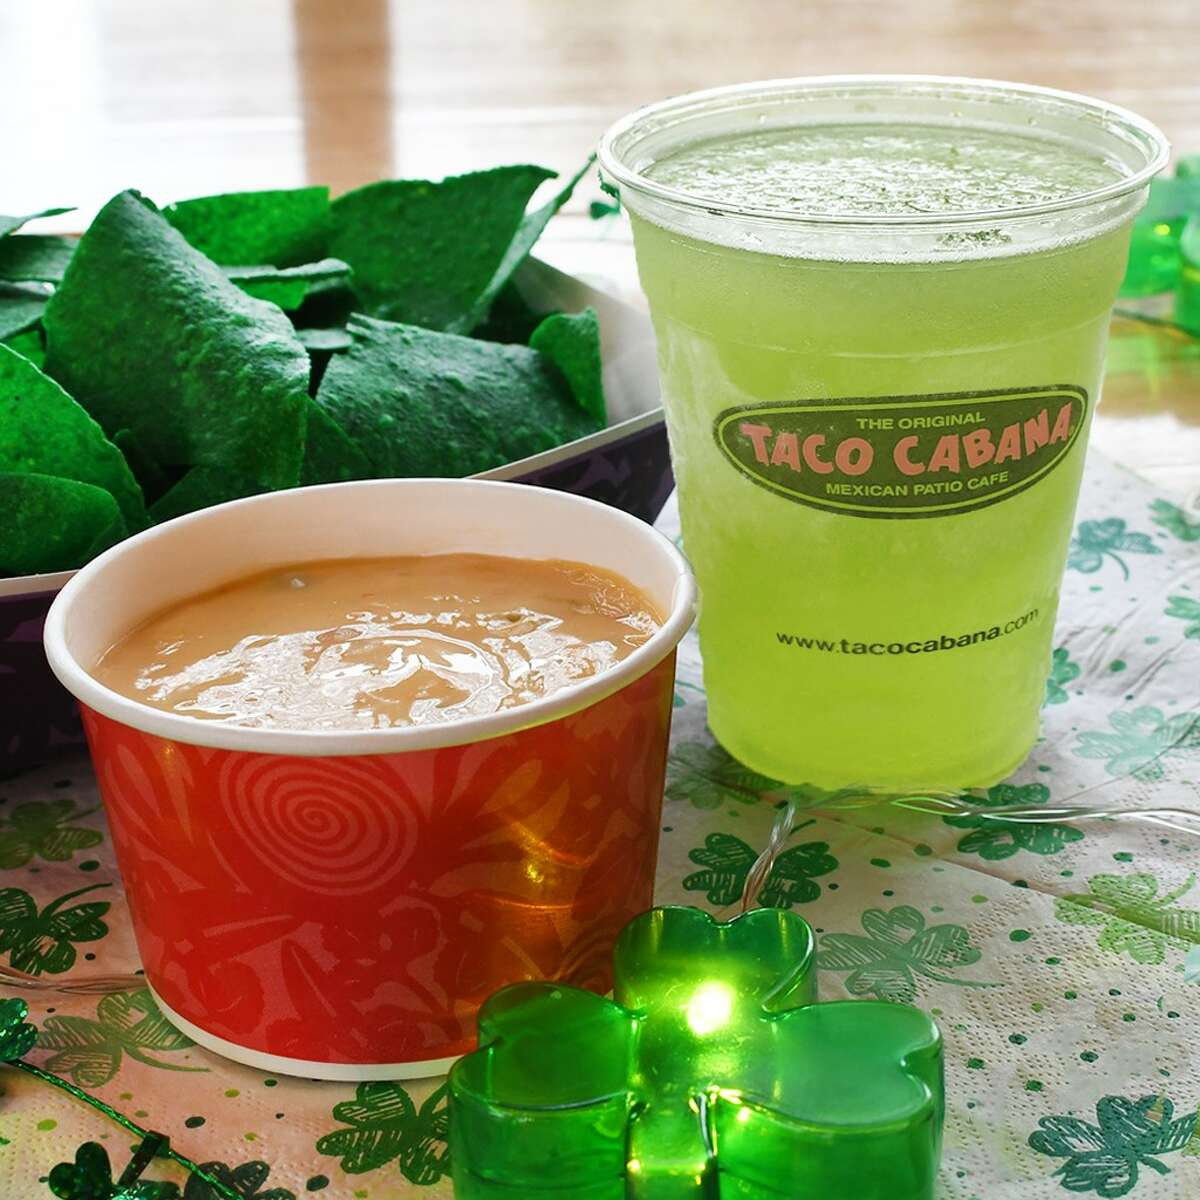 TACO CABANA Where: Multiple locations; see tacocabana.com What: Now thorough St. Patrick's Day, Taco Cabana restaurants are offering a special green drink - Frozen Green Apple made with Tito's - for $4.